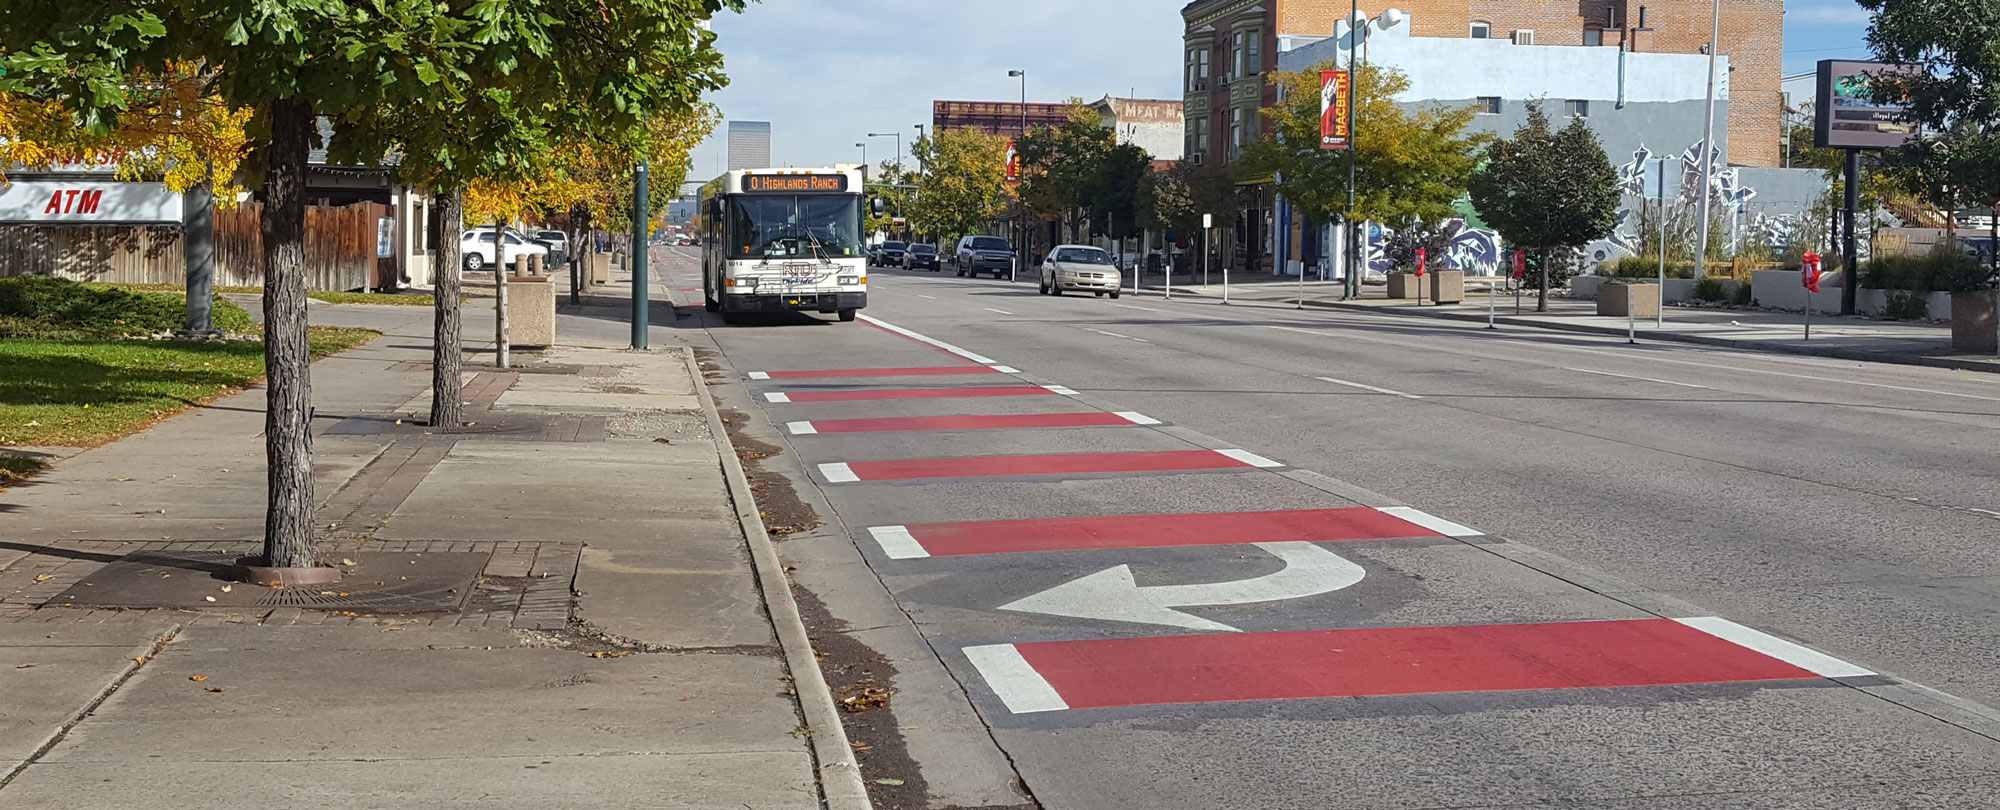 red pavement markings and bus in transit and turning lane